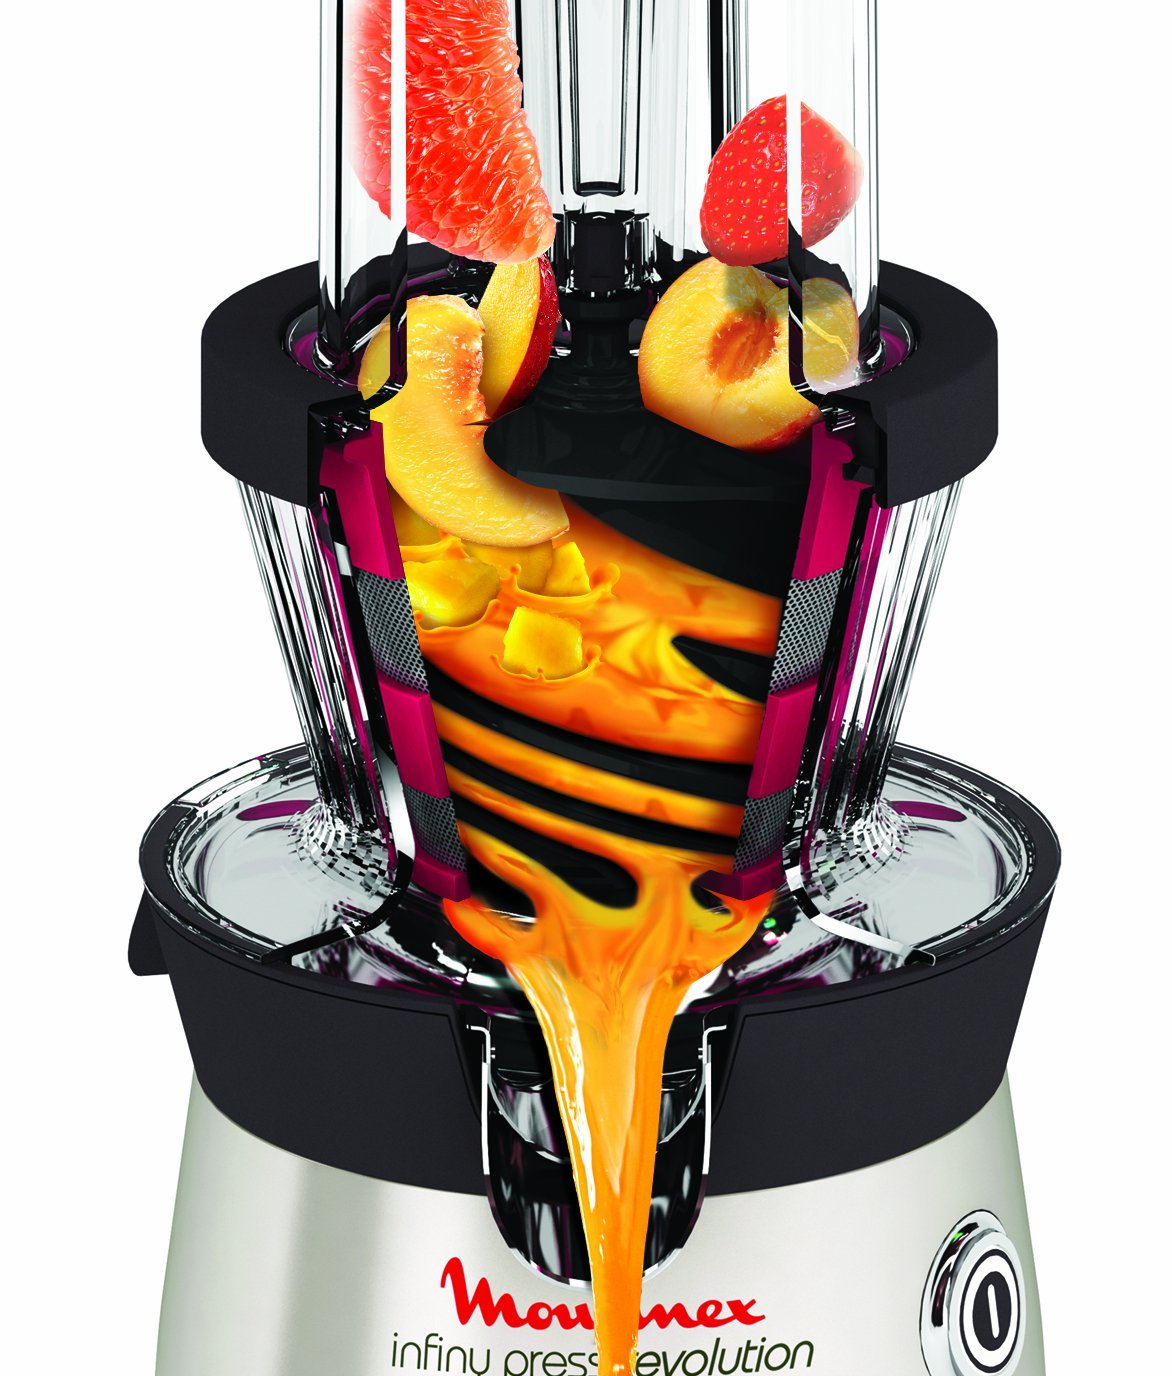 Moulinex Slow Juicer Infiny Press Revolution : ?????? - ????? :: ?????????? - ???????????? :: ?????????? ???????????? MOULINEX ZU5008 Infiny ...